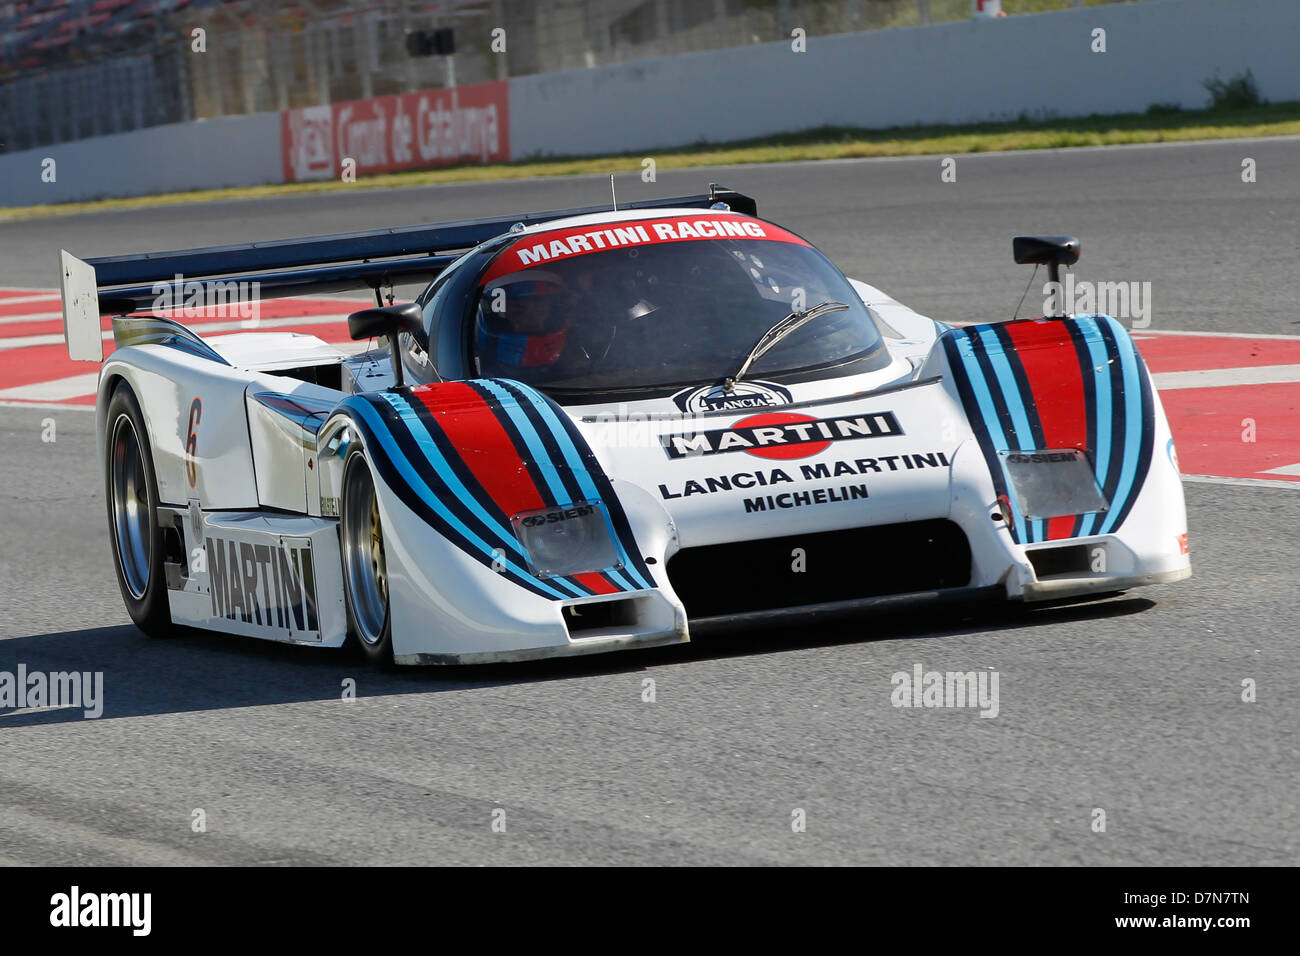 https://c8.alamy.com/compit/d7n7tn/gruppo-c-gara-a-barcellona-catalonia-revival-classico-montmelo-circuit-aprile-2013-rupert-clevely-in-lancia-lc2-d7n7tn.jpg